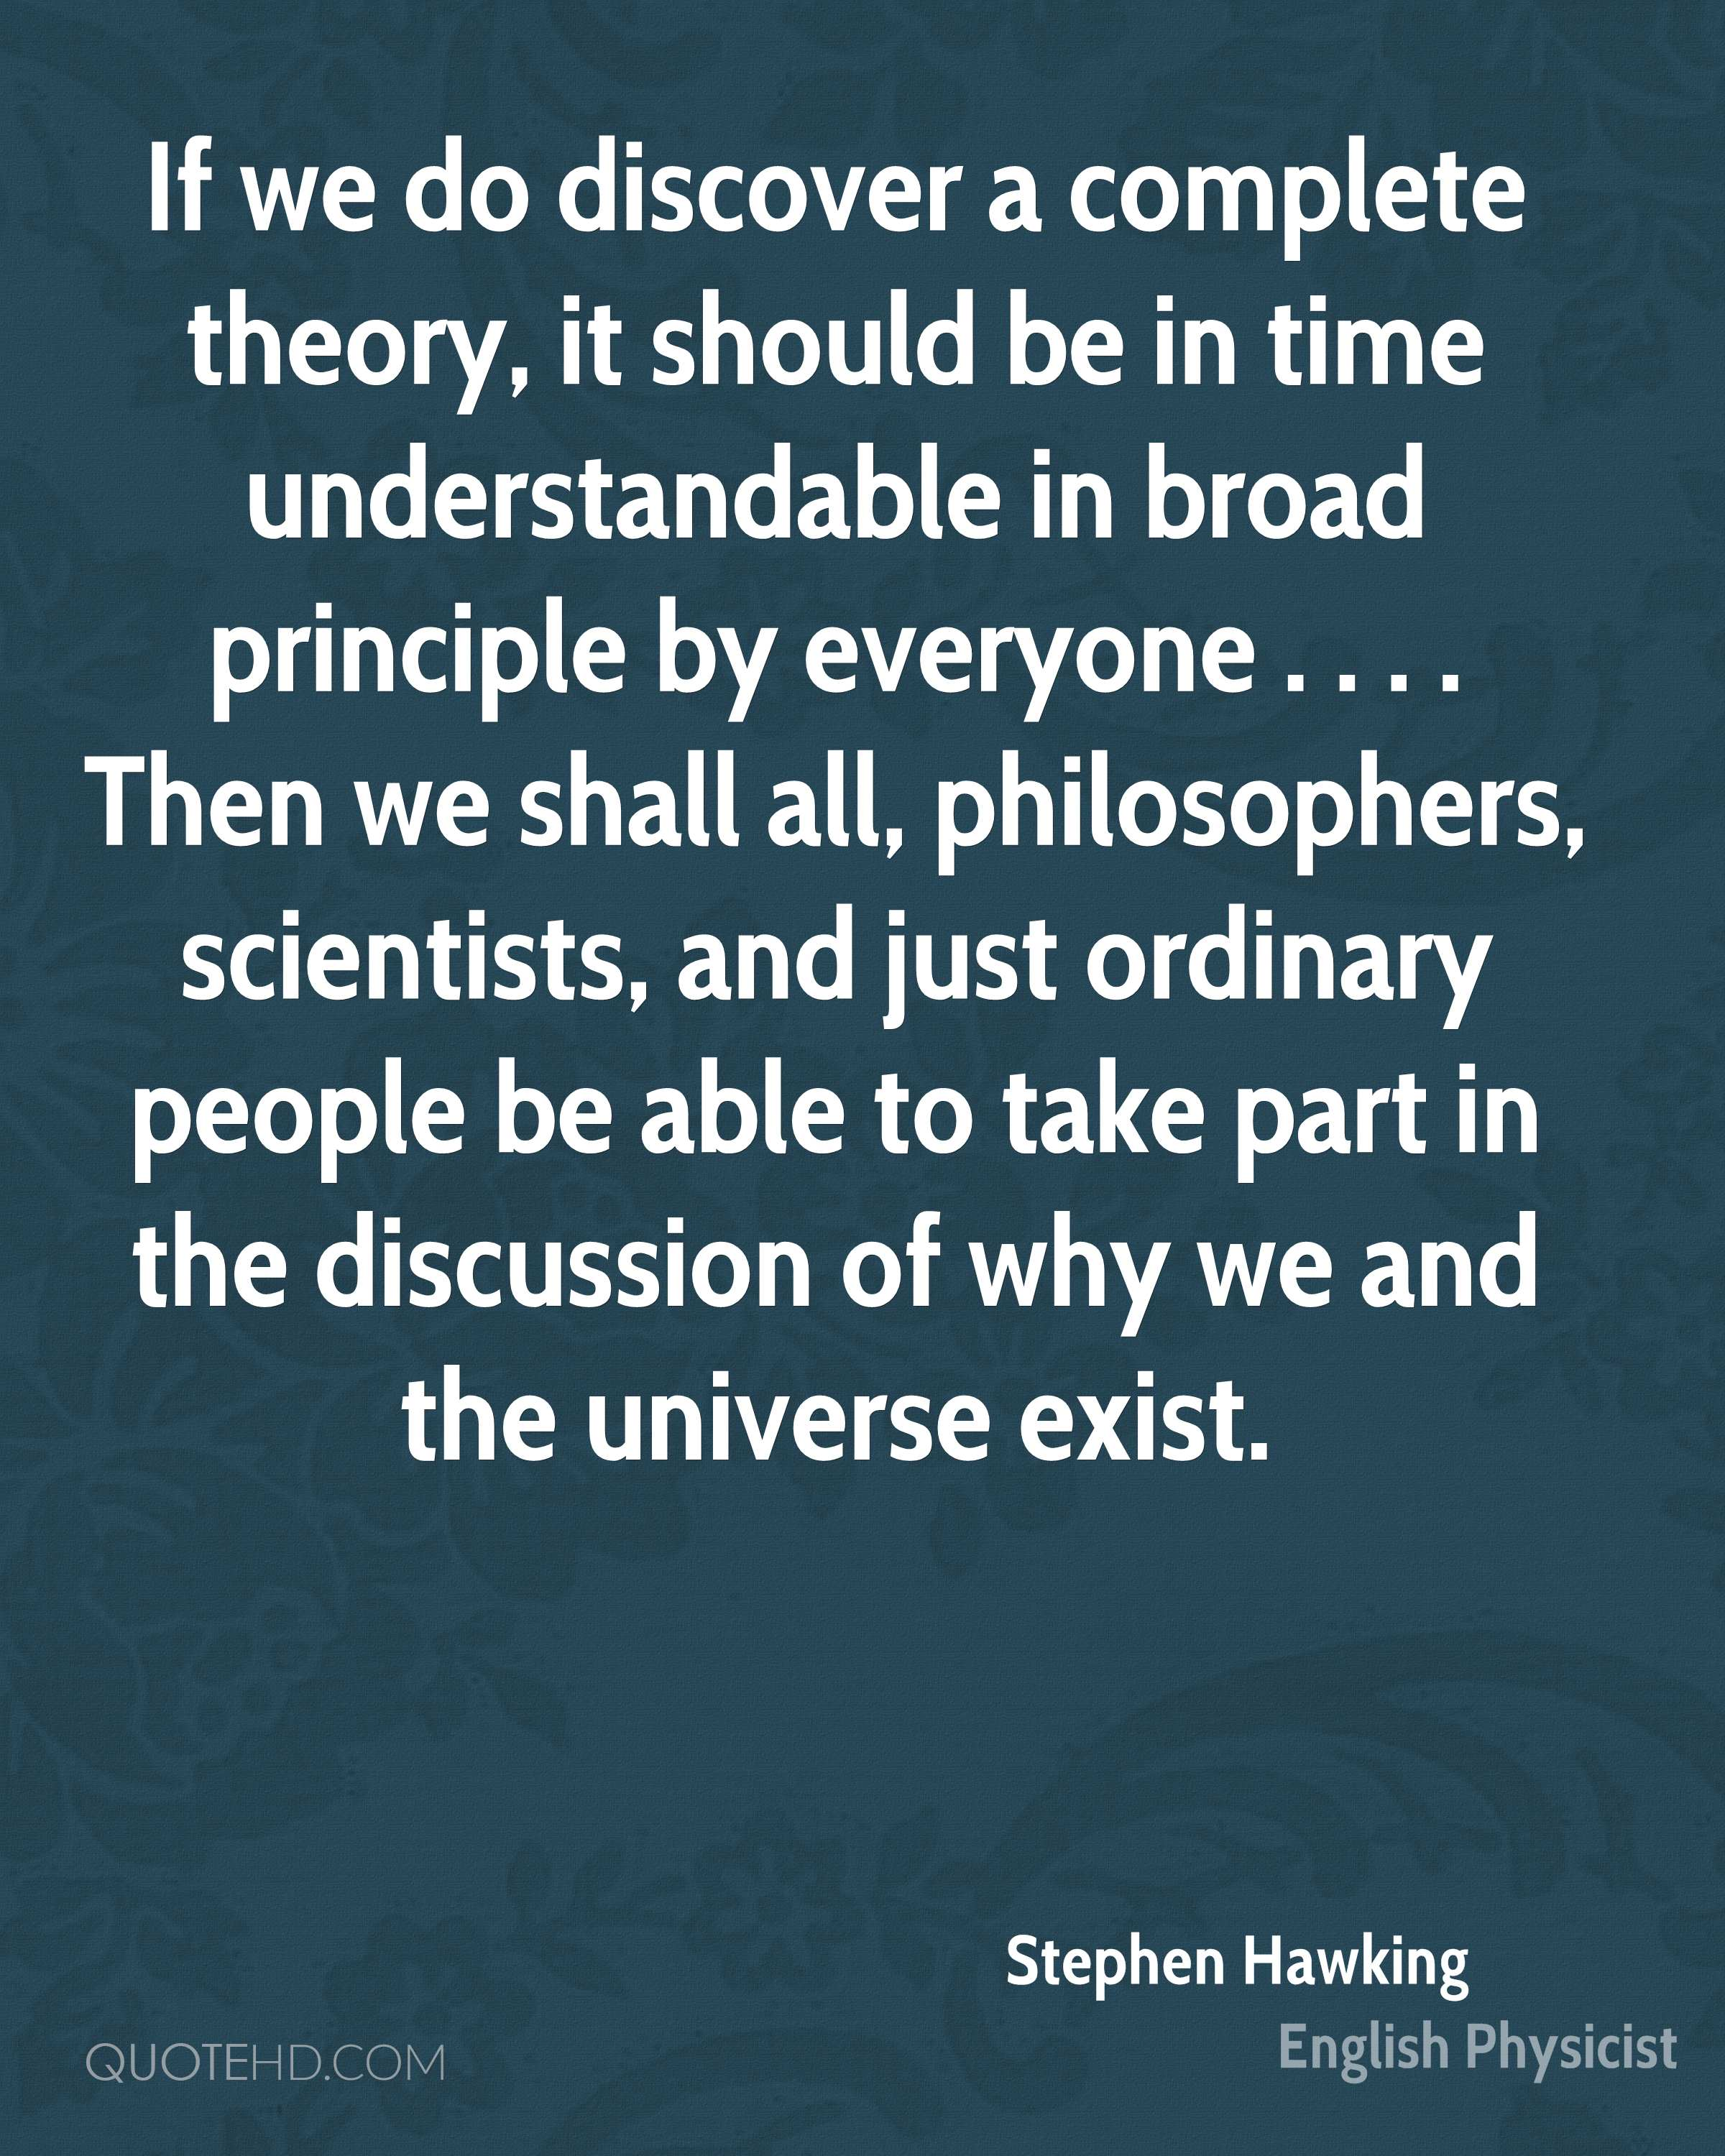 If we do discover a complete theory, it should be in time understandable in broad principle by everyone . . . . Then we shall all, philosophers, scientists, and just ordinary people be able to take part in the discussion of why we and the universe exist.